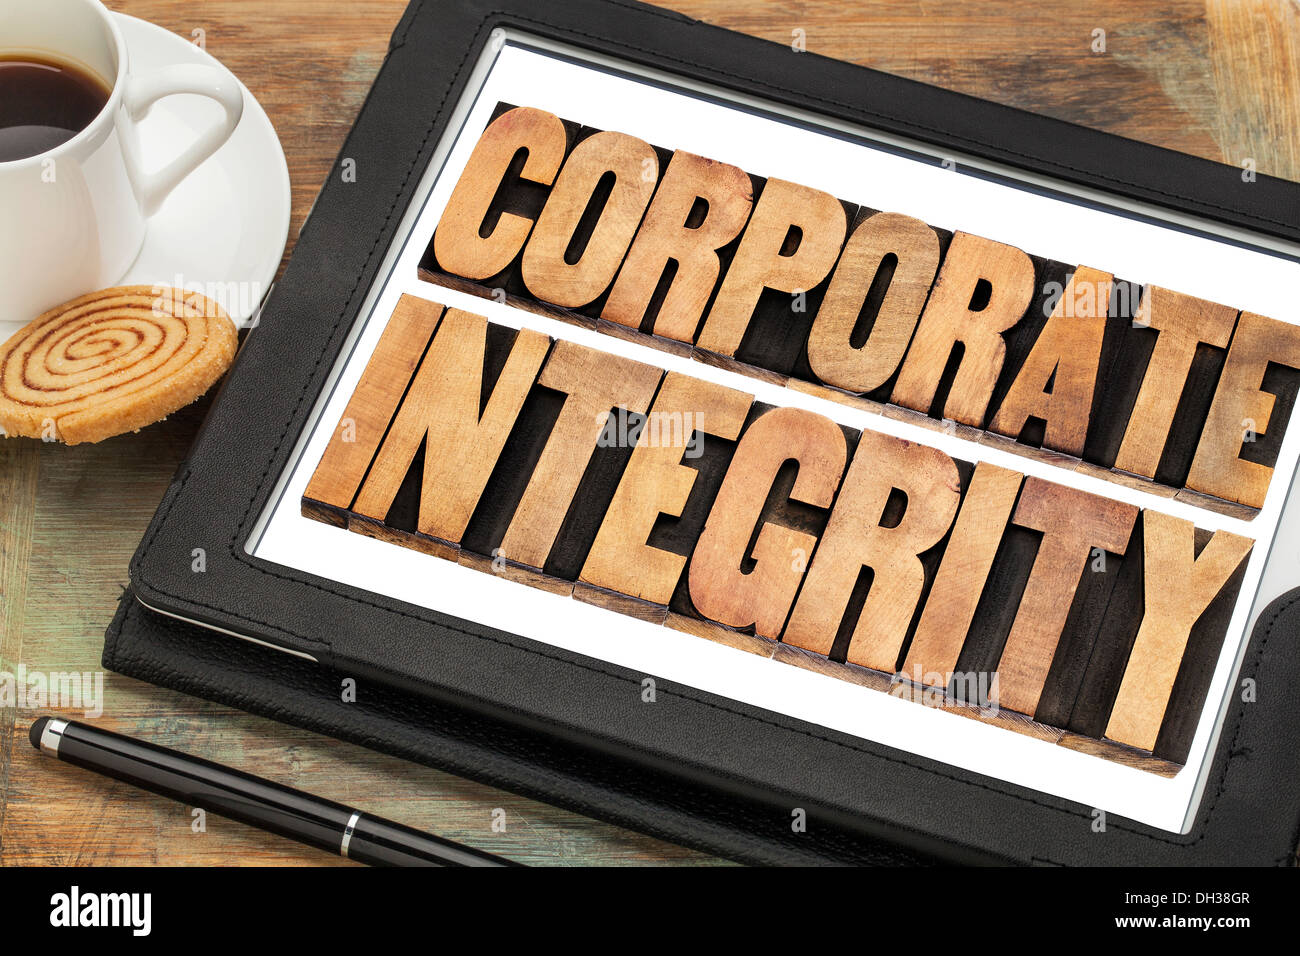 corporate integrity - business ethics concept - text in letterpress wood type on digital tablet computer - Stock Image